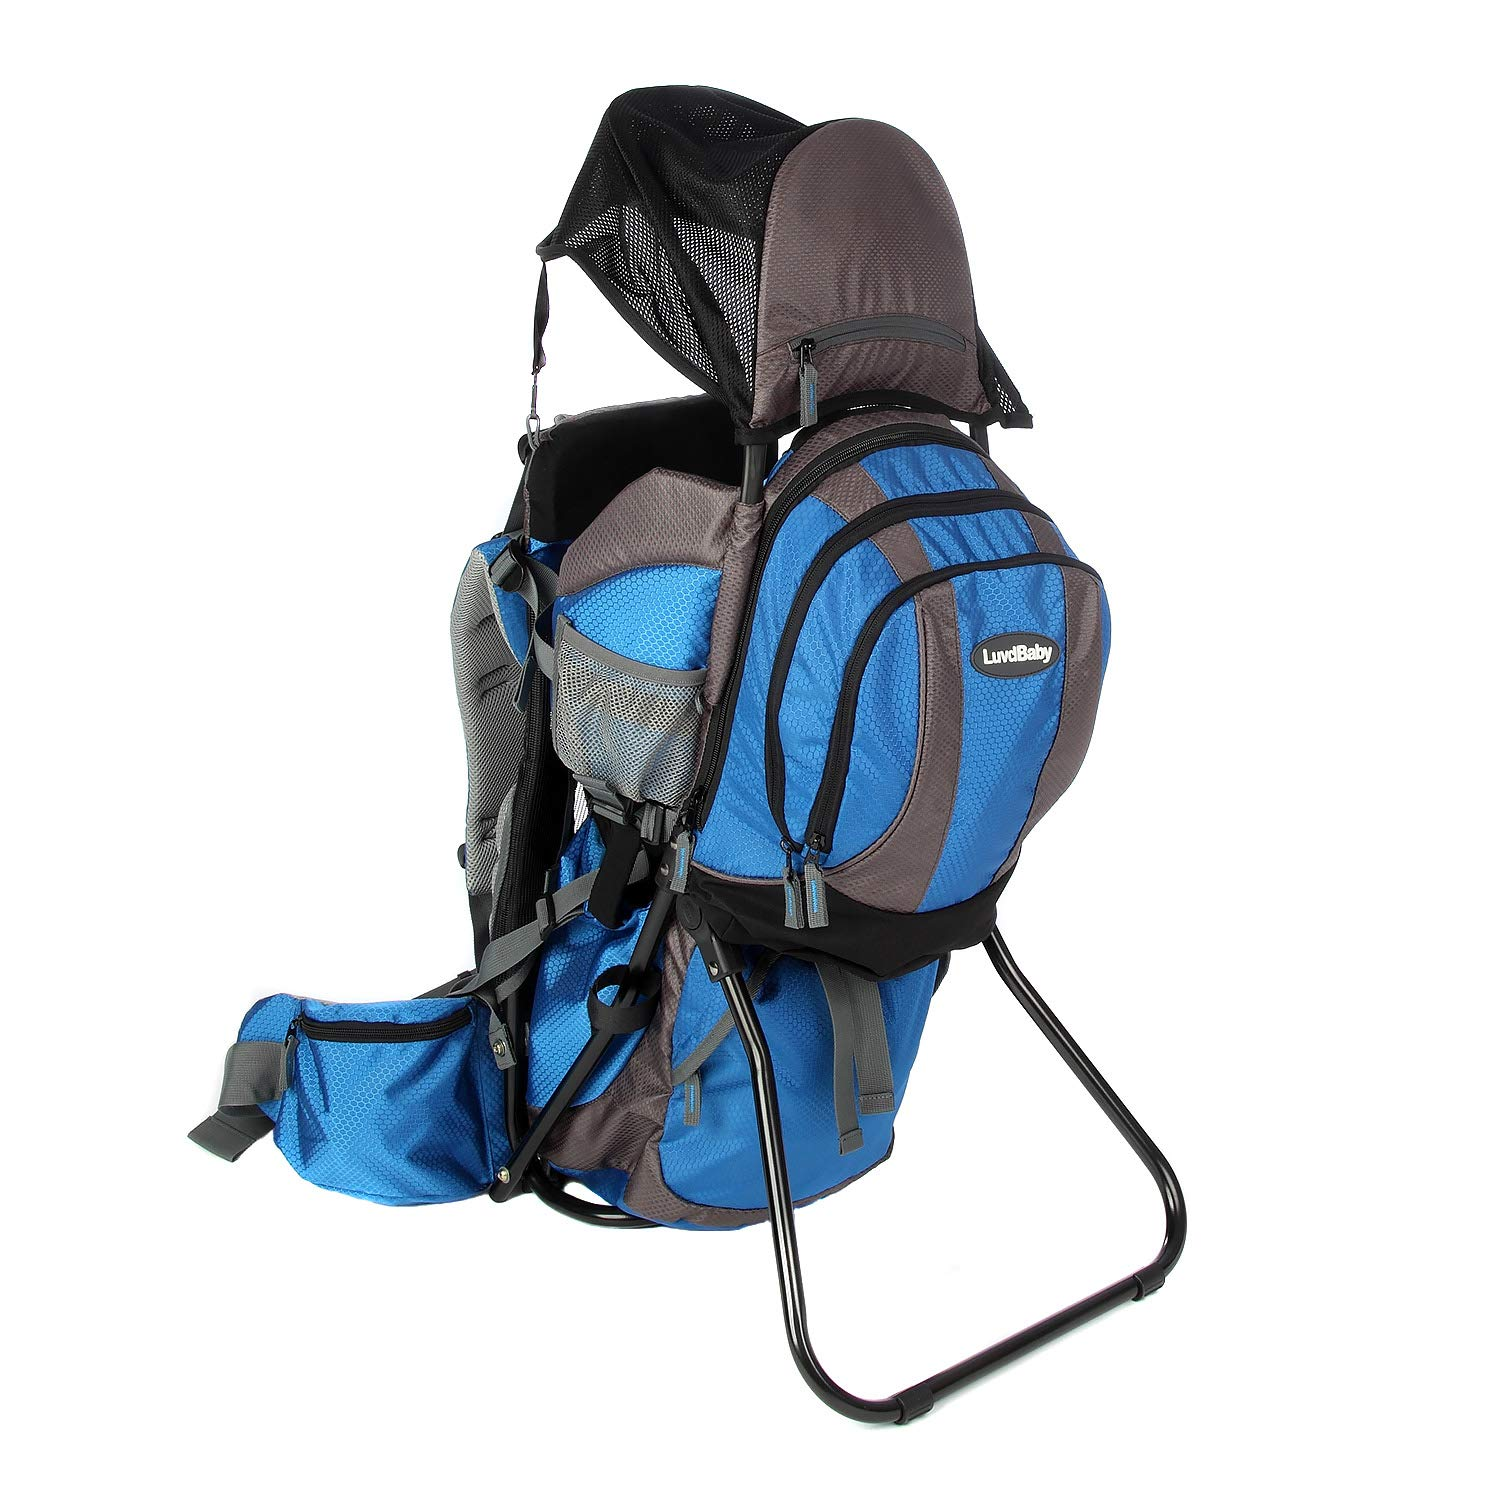 Premium Baby Backpack Carrier with Removable Backpack - 2 in 1 for Hiking with Kids – Carry Your Child Ergonomically (Blue/Grey)